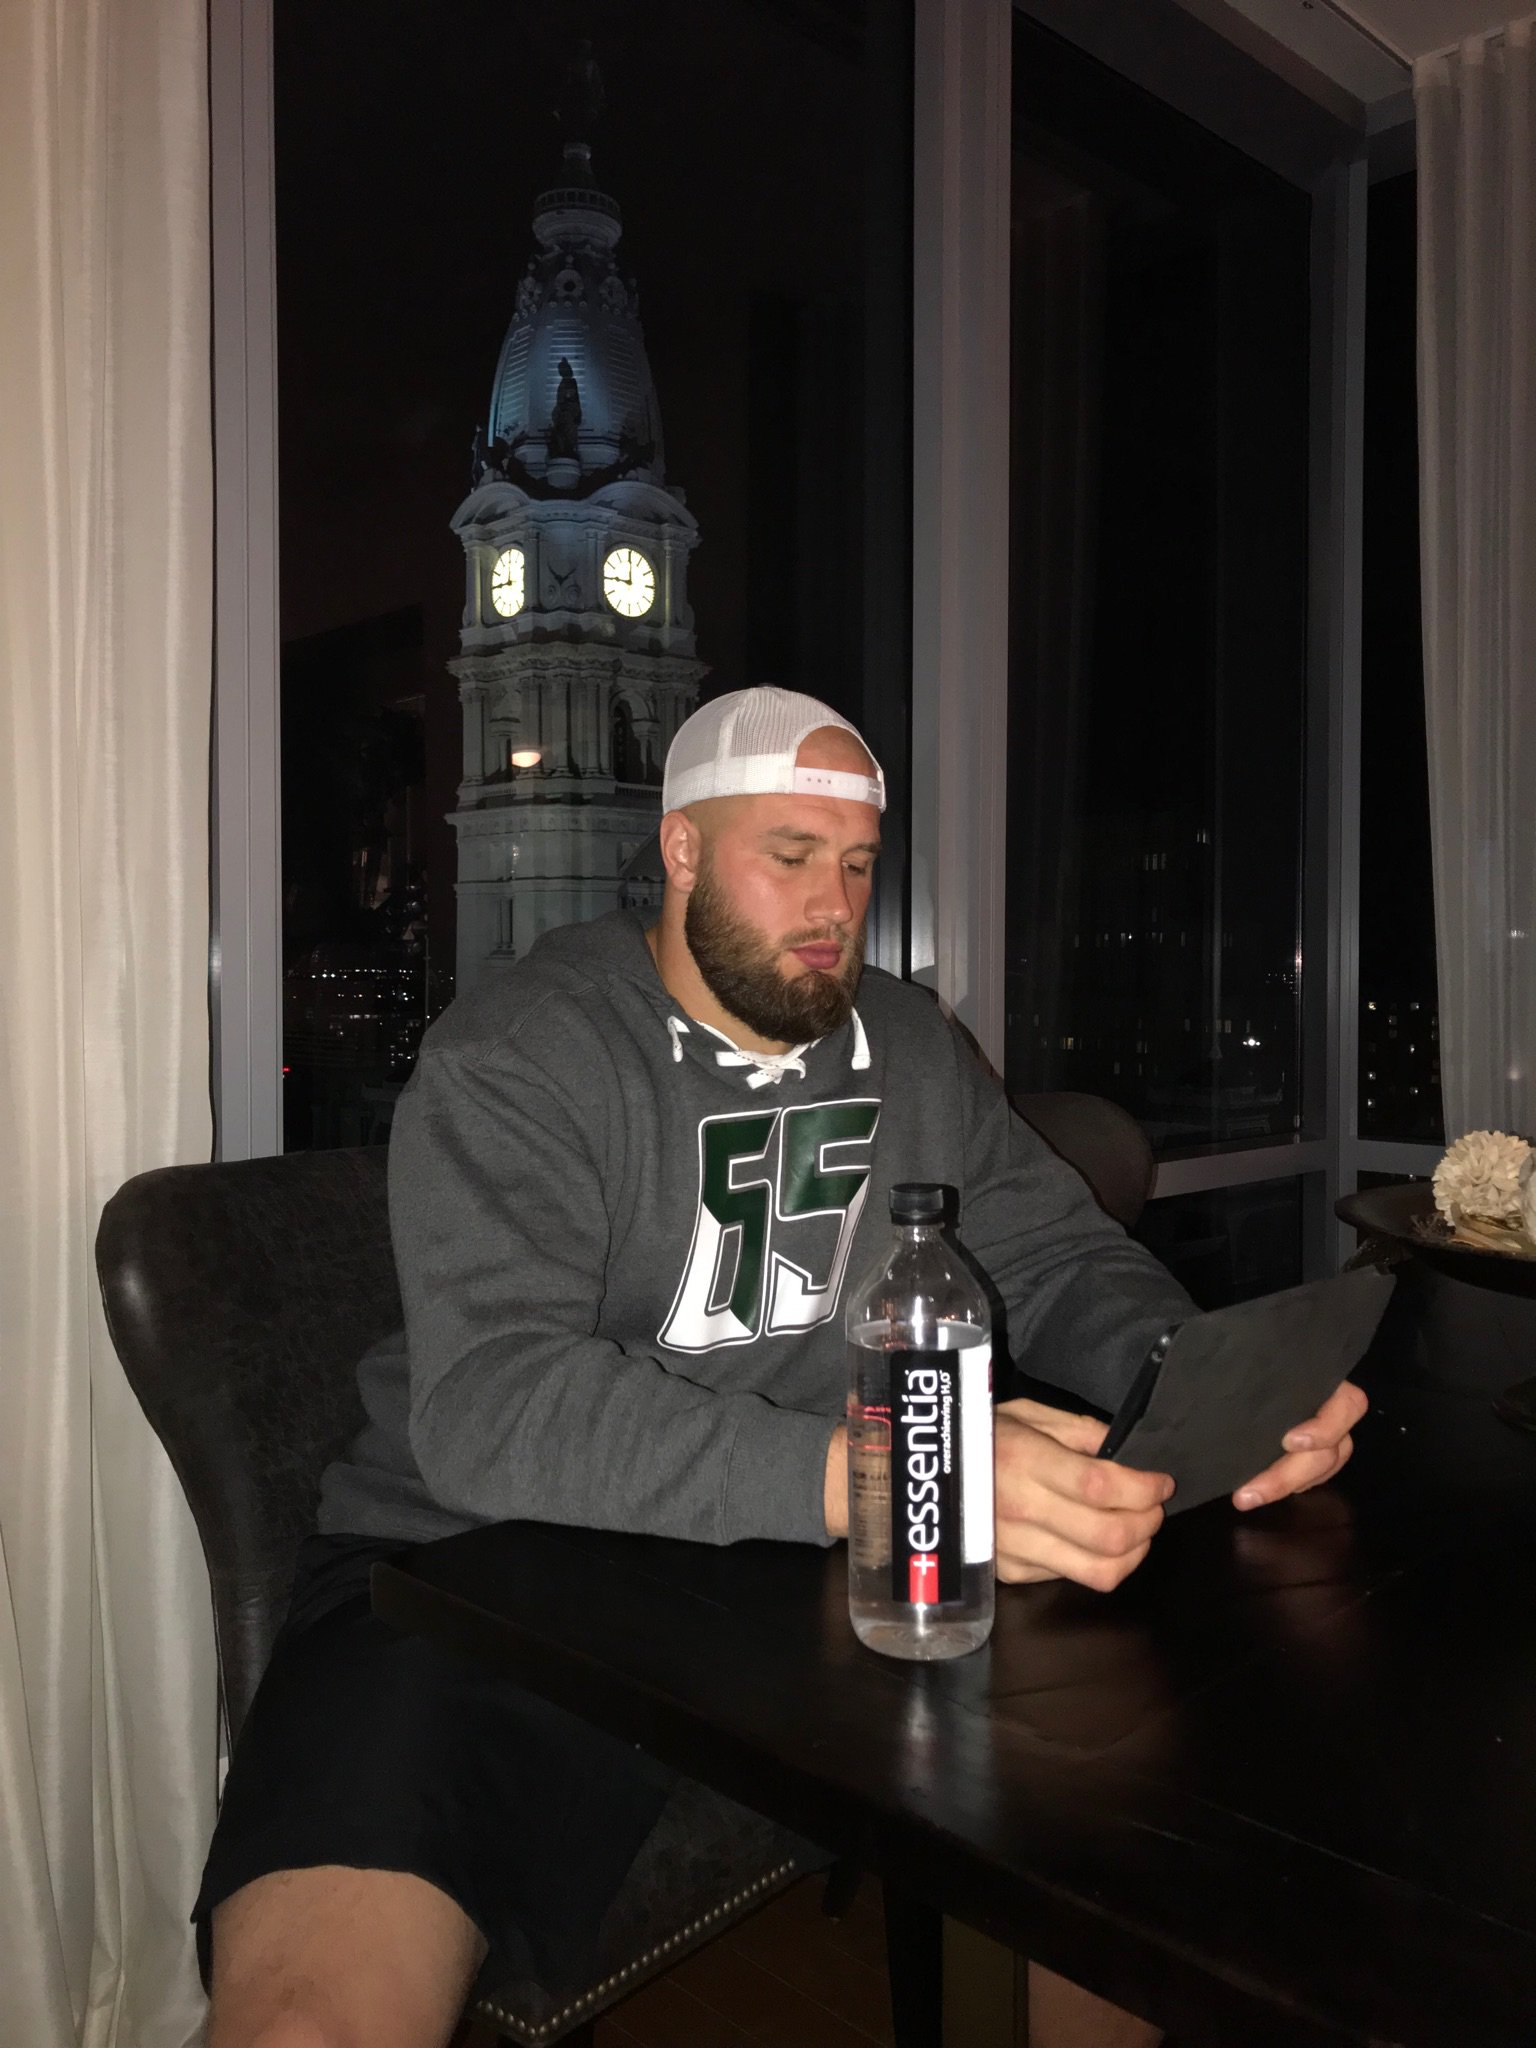 Late night in the playbook! #nodaysoff #essentiawater #flyeaglesfly #views https://t.co/6ECktL7EgL